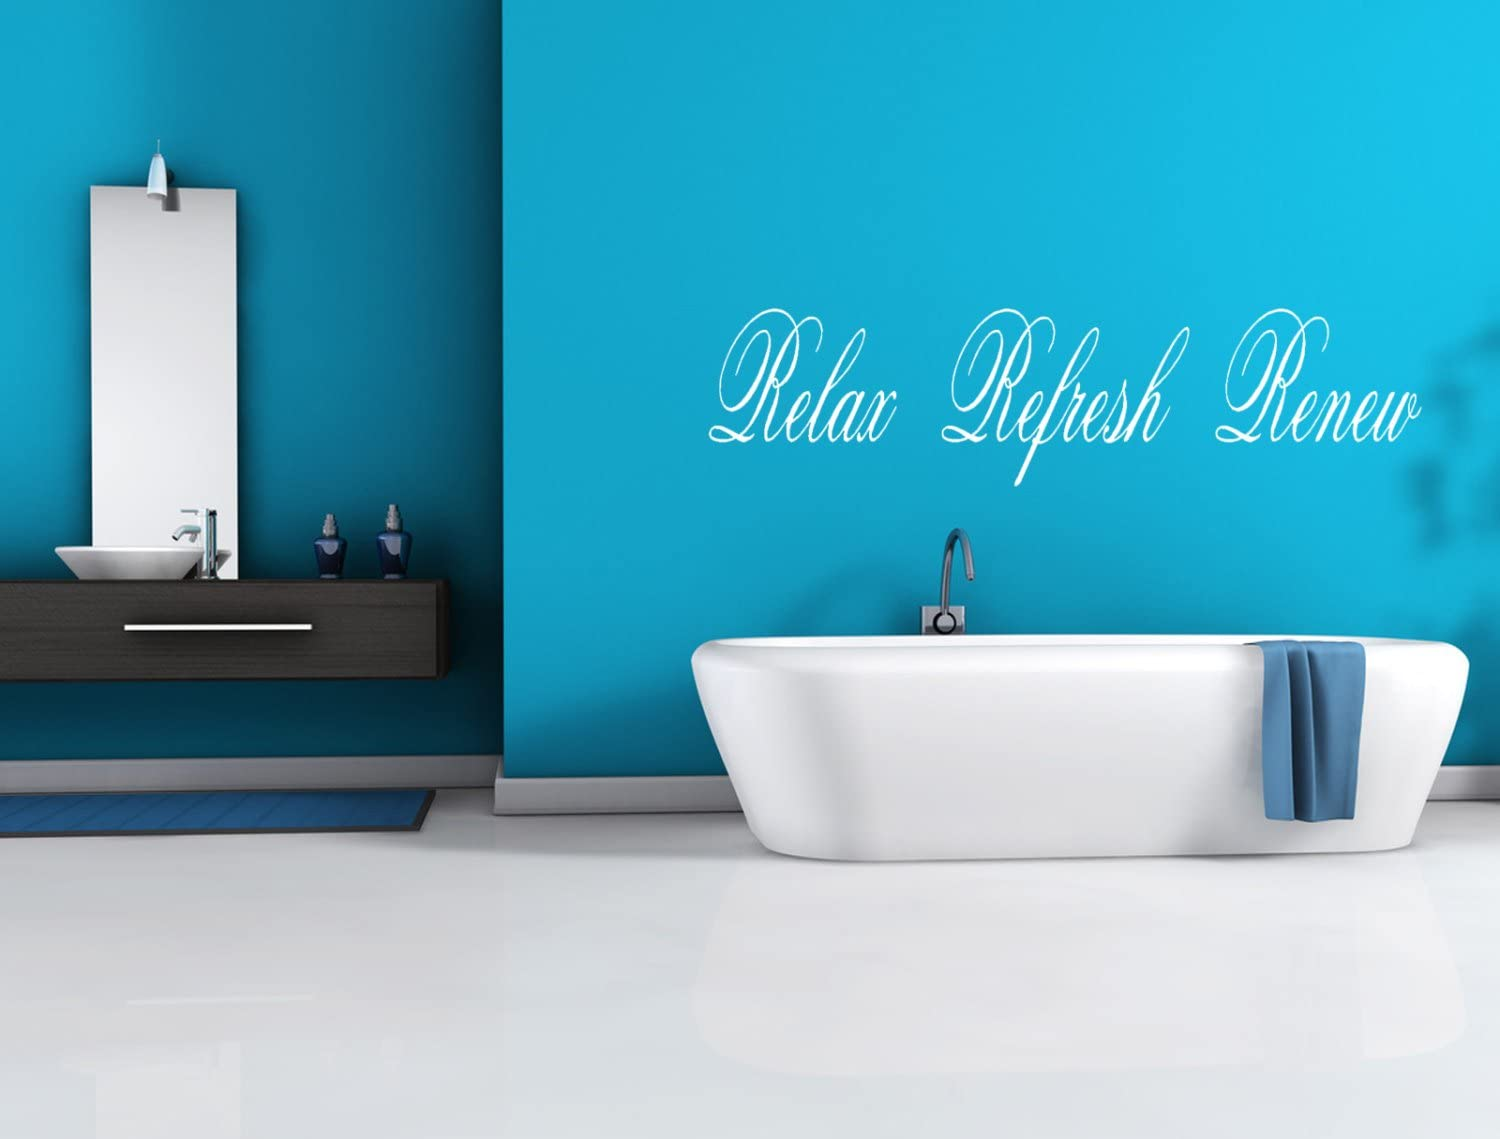 "Relax Refresh Renew Bathroom Spa Wall Decal Letters 11"" x 42"""